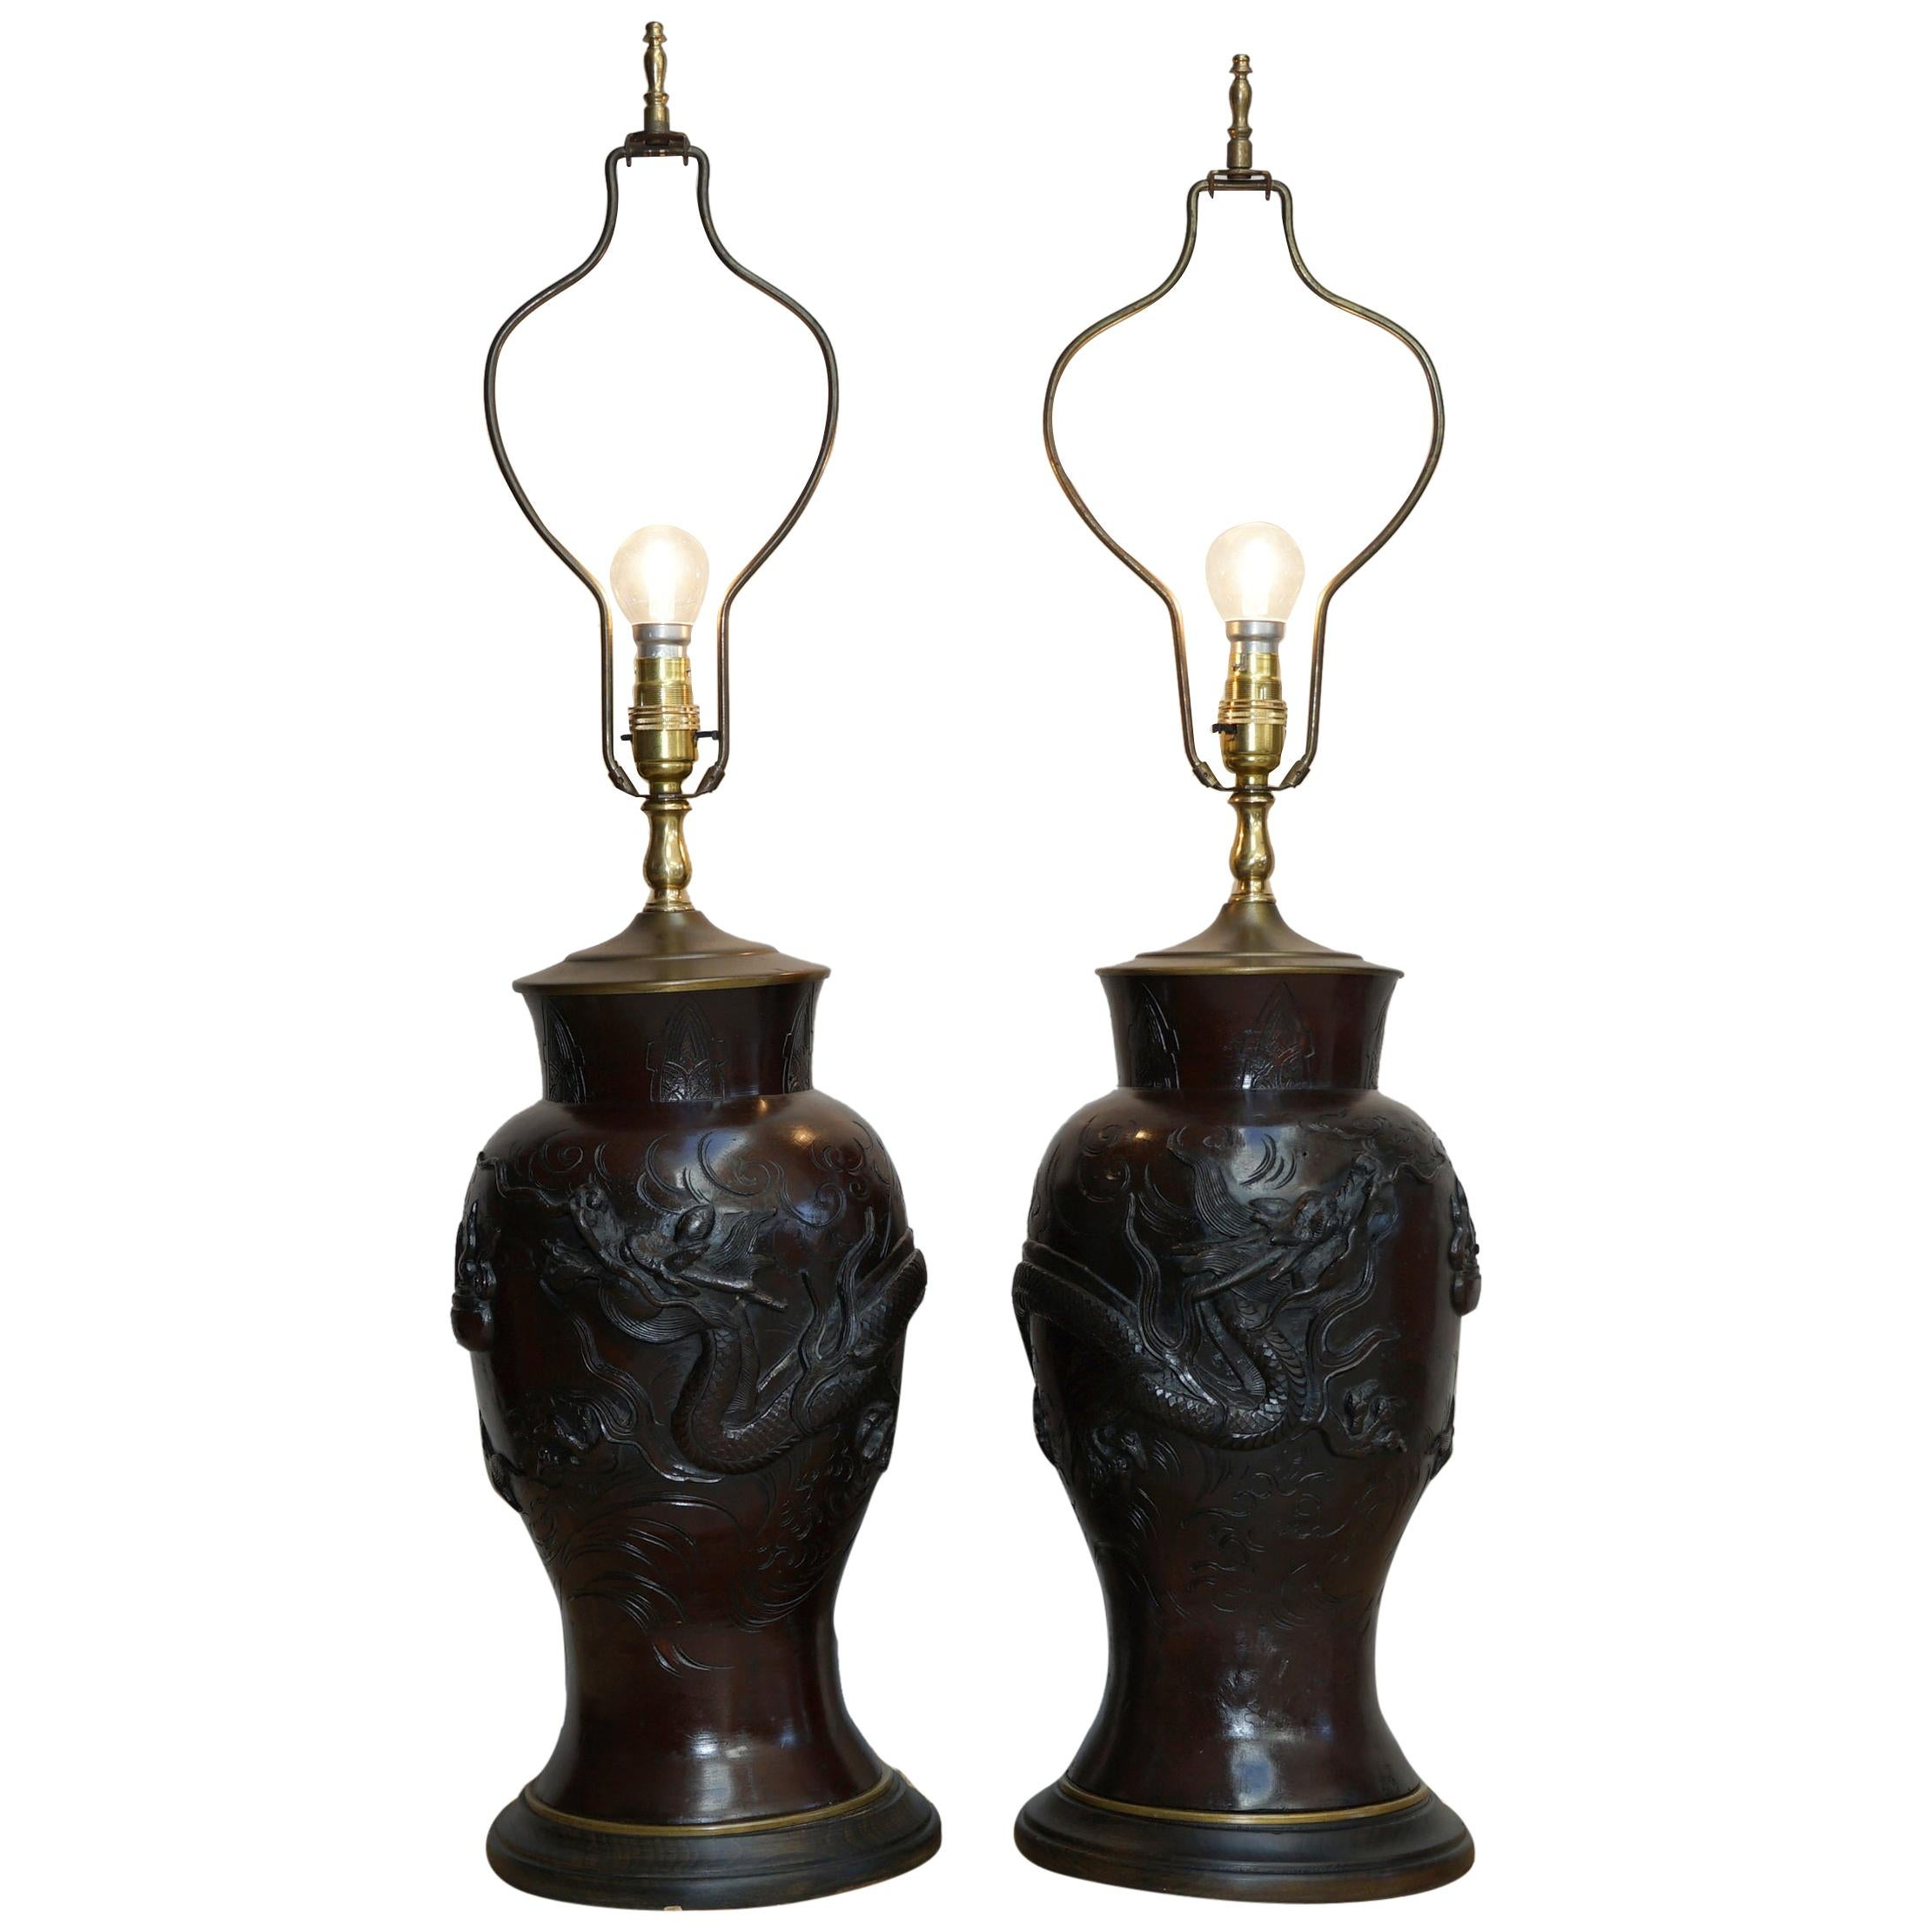 Pair of Vintage Chinese Export Bronze Table Lamps with Dragons & Floral Decor